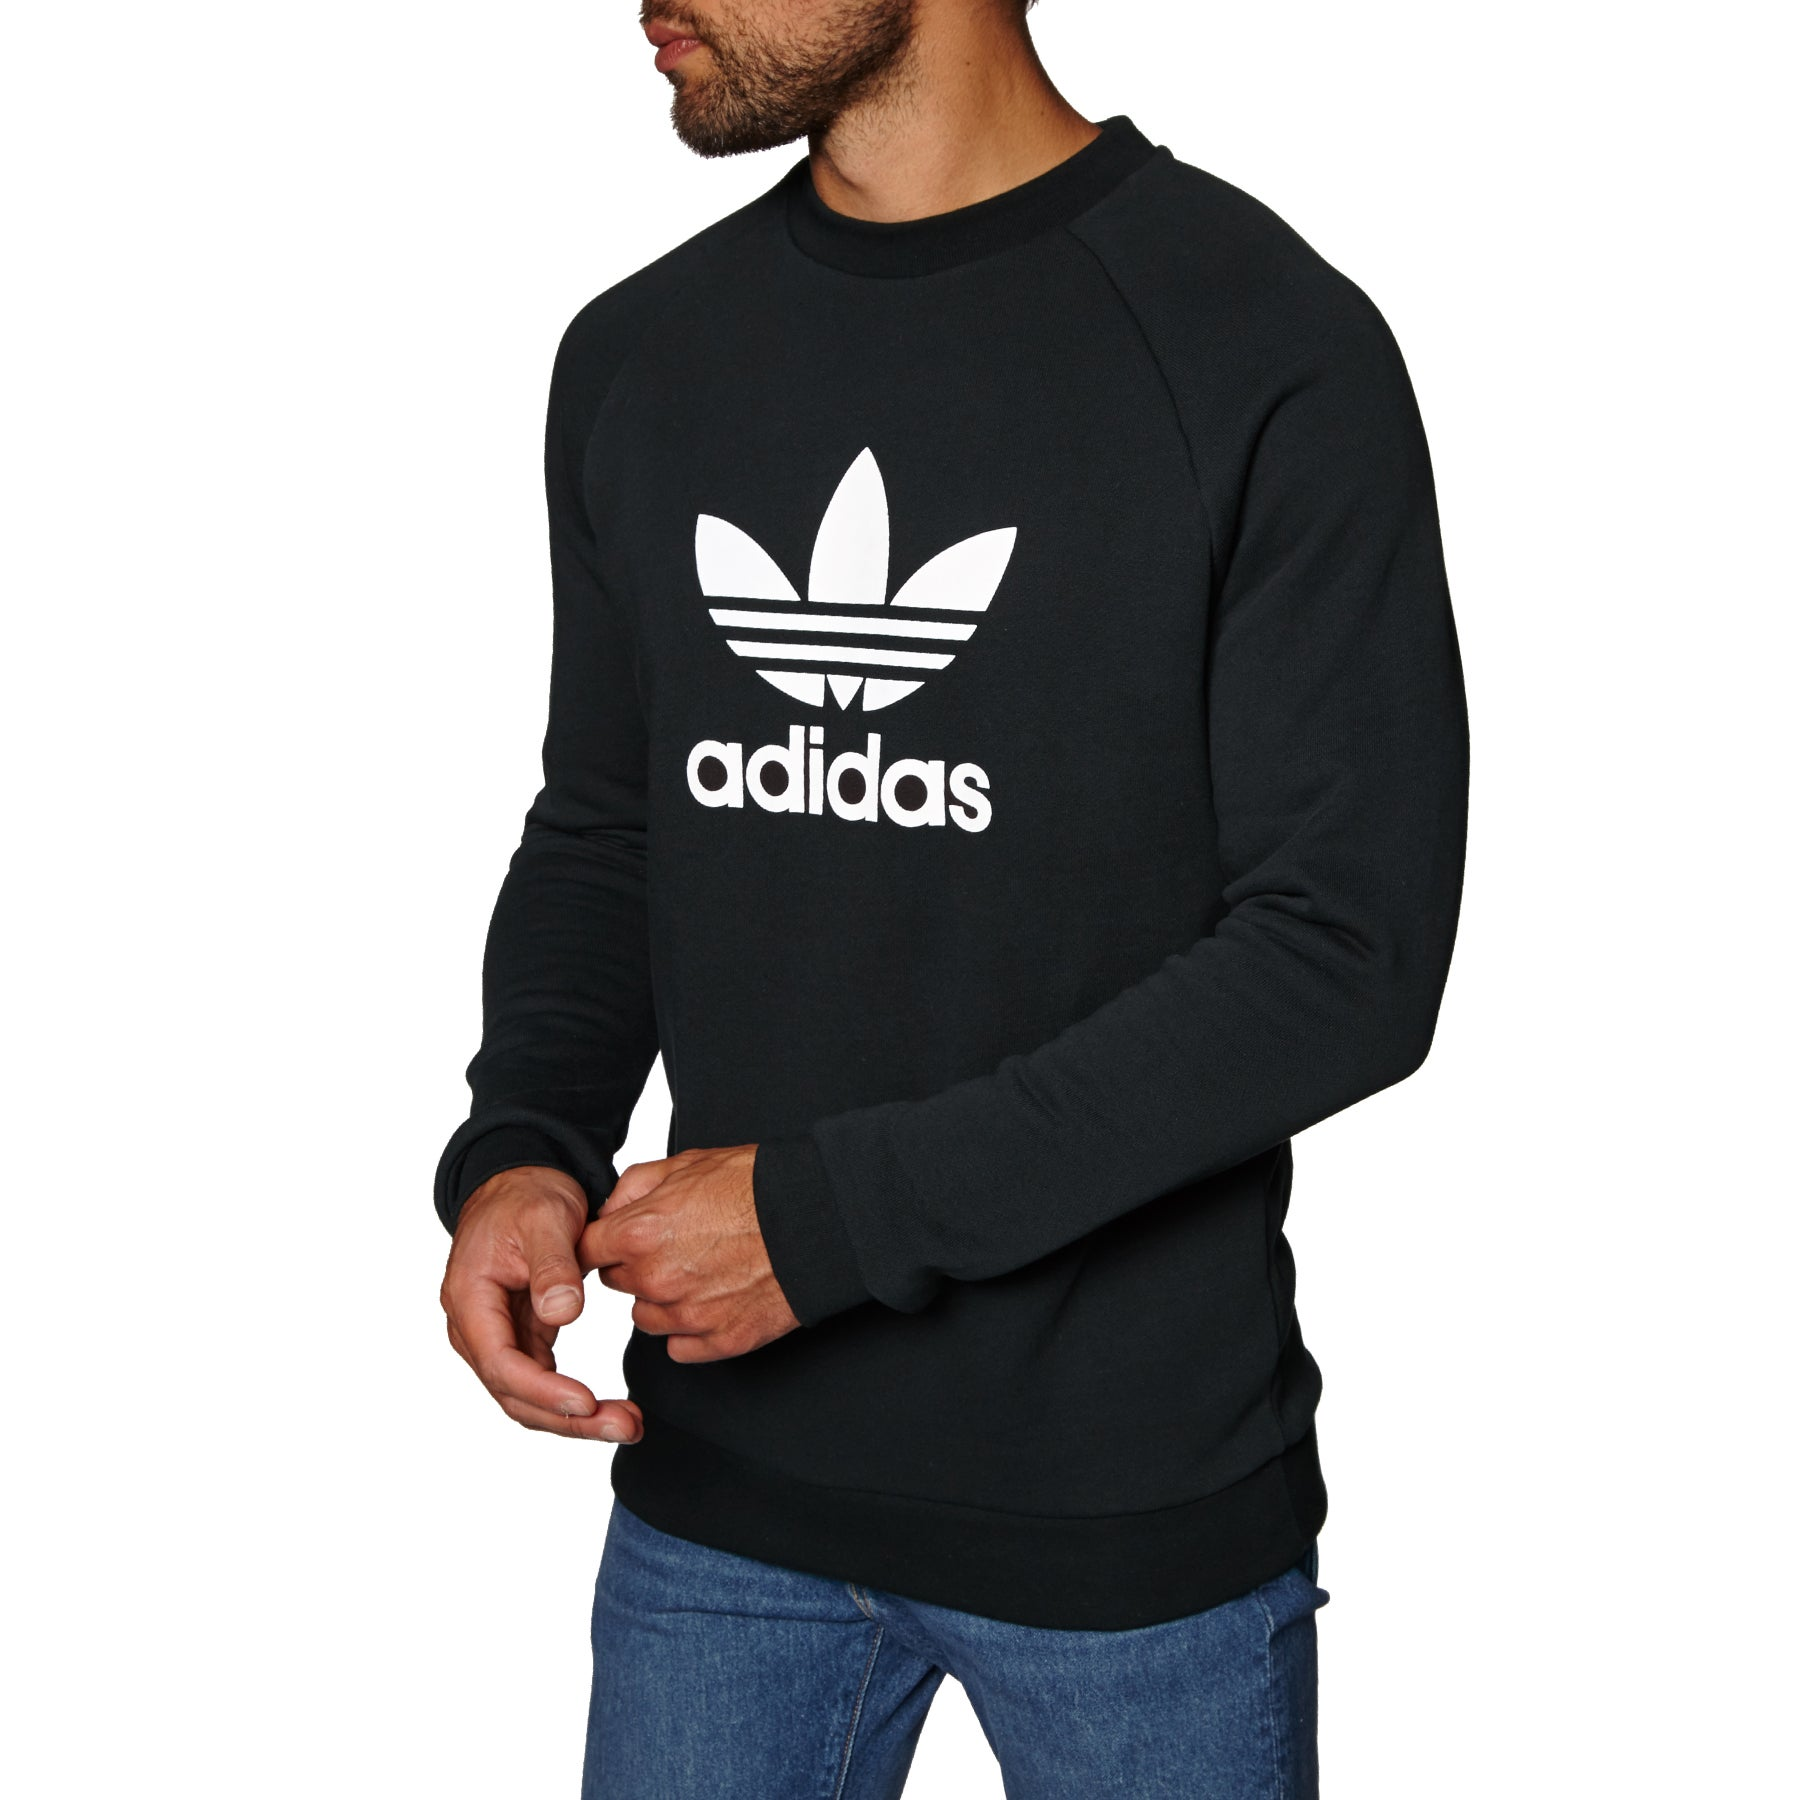 Adidas Originals Trefoil Crew Sweater - Black